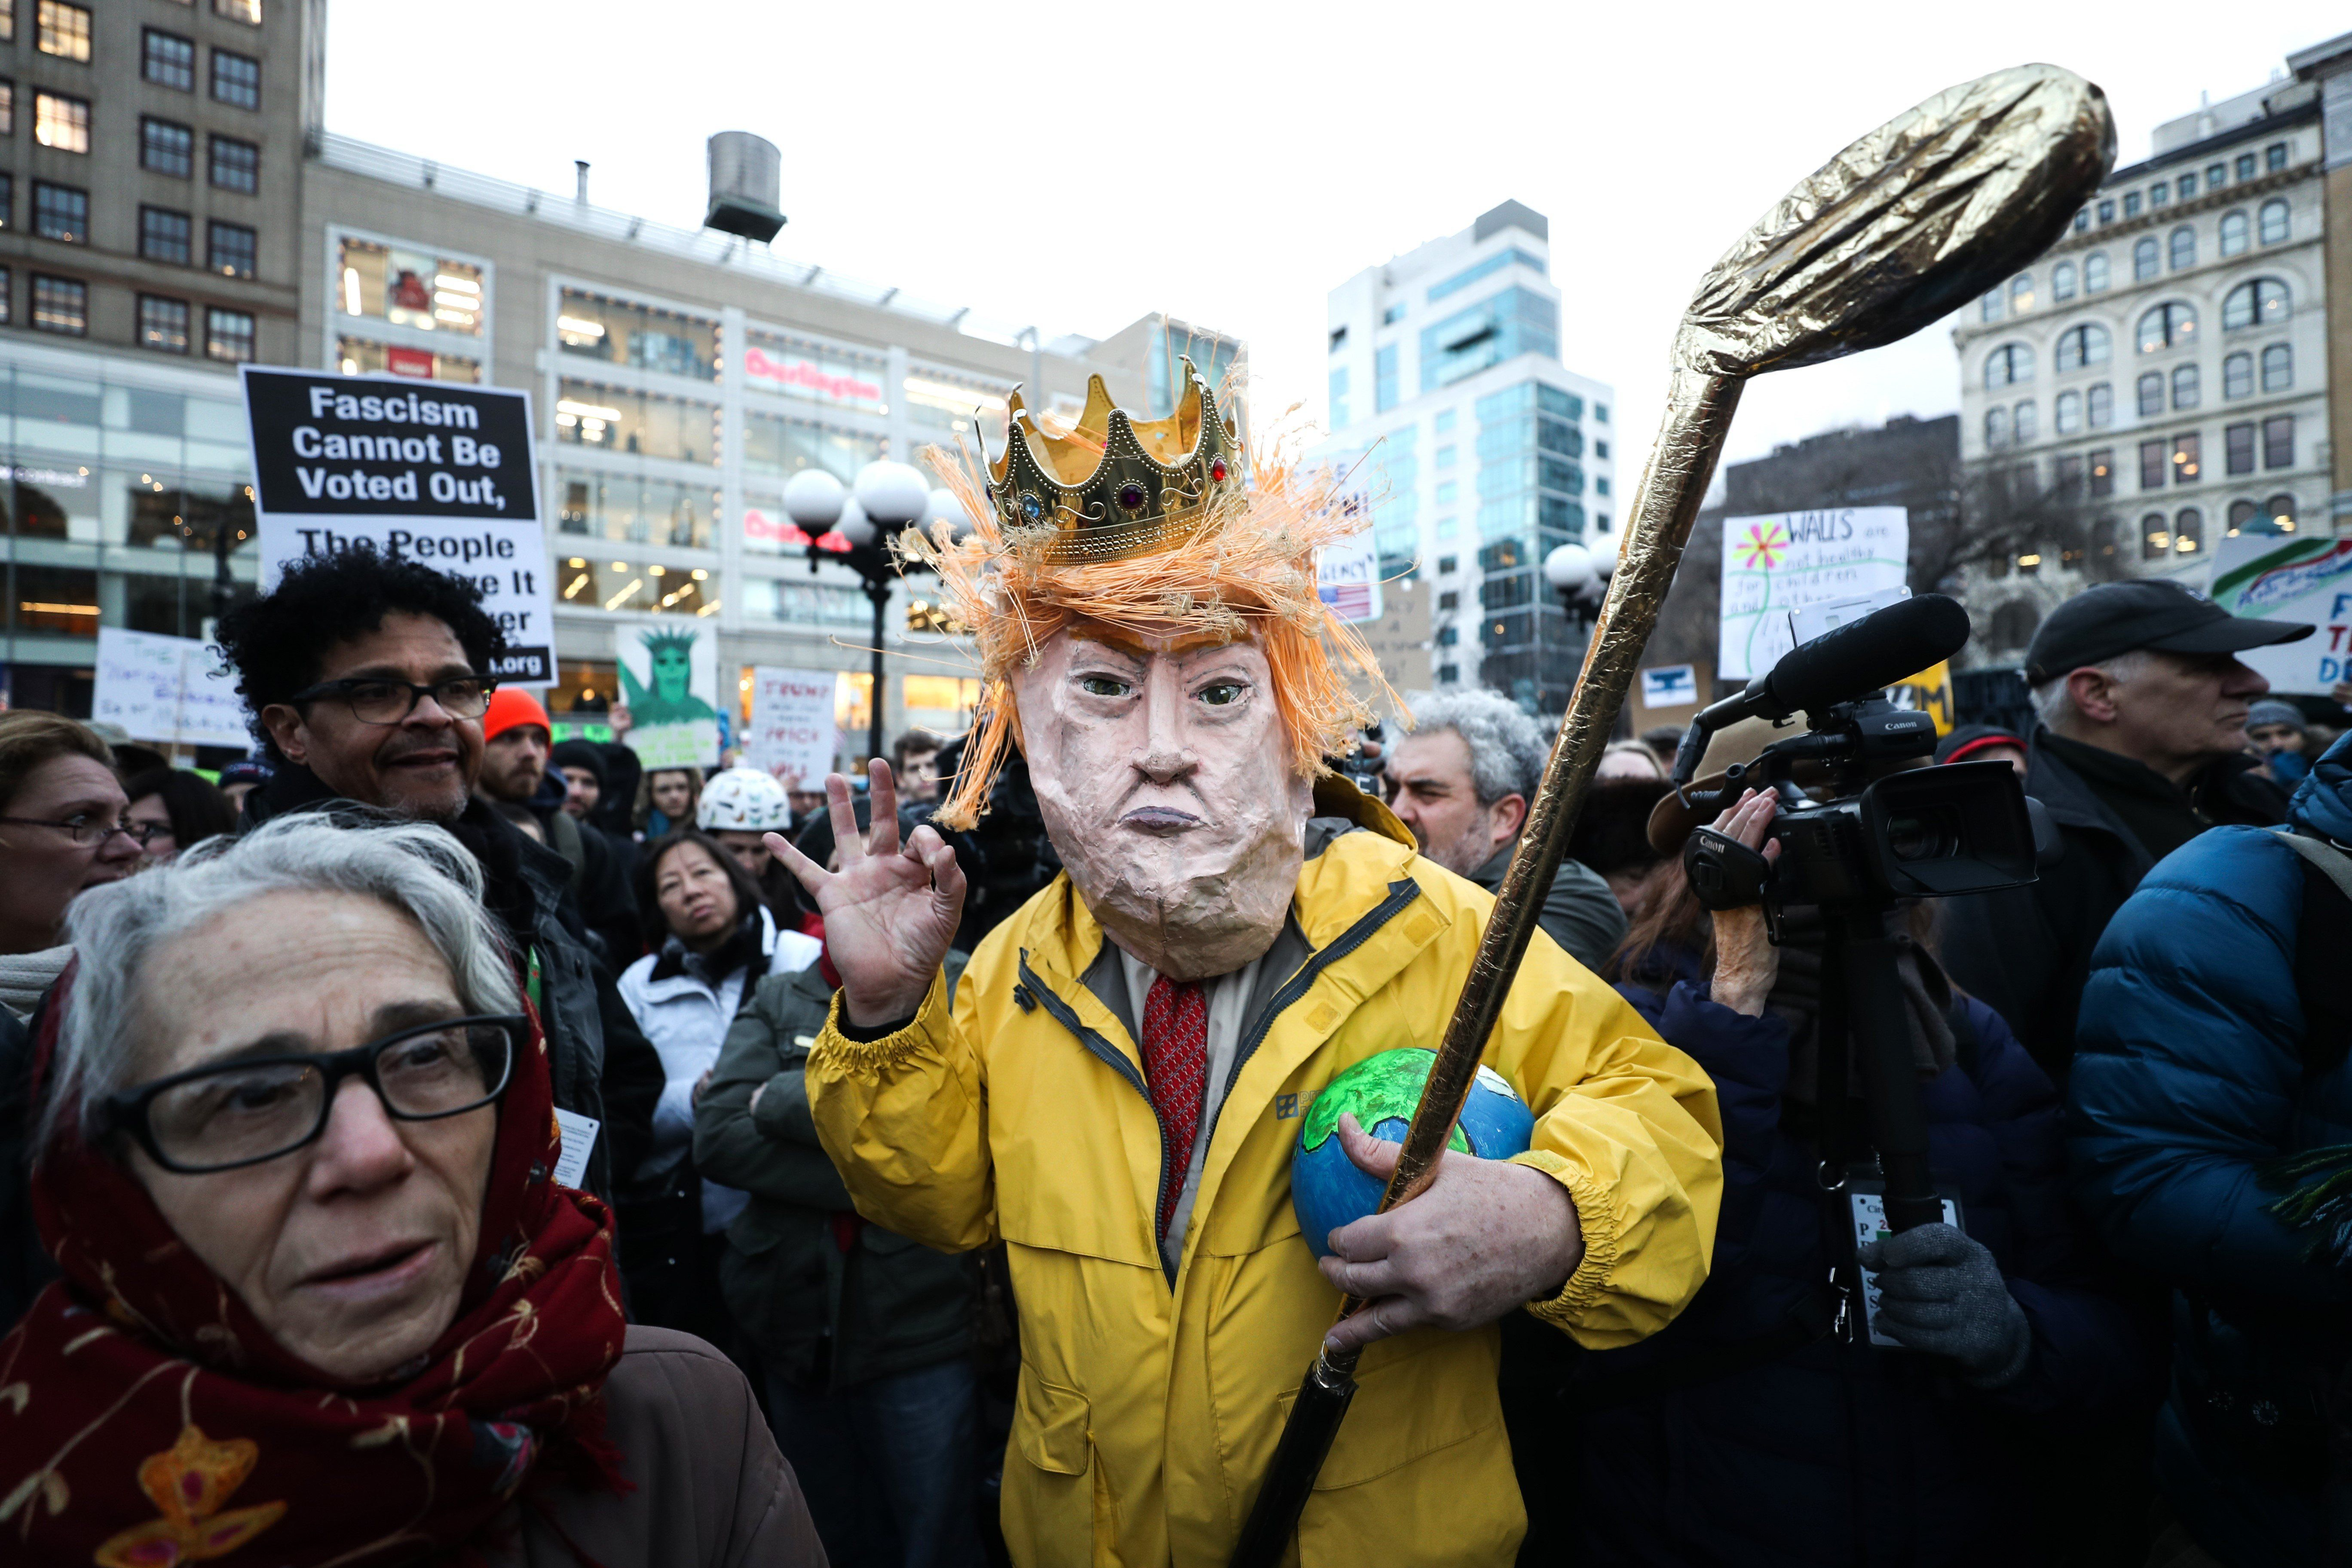 NEW YORK, UNITED STATES - FEBRUARY 18 : A man dressed in a mask as depicts US President Donald Trump hold golf bat during a President's Day protest against U.S. President Trump, and his immigration policy at Union Square in New York, United States on February 18, 2019. (Photo by Atilgan Ozdil/Anadolu Agency/Getty Images)